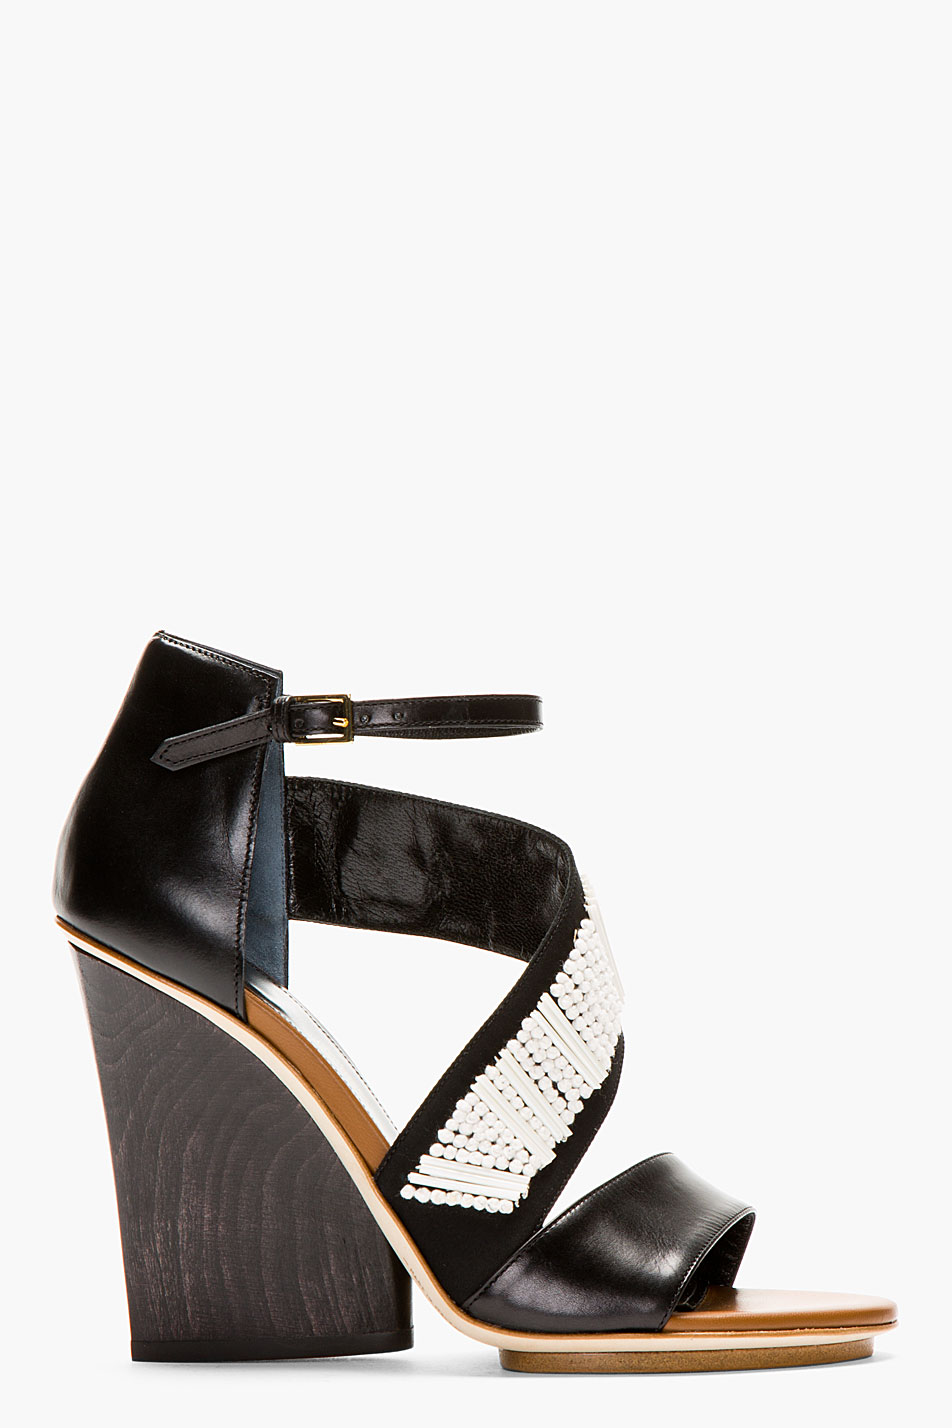 Maiyet black beaded and embroidered wedge sandals